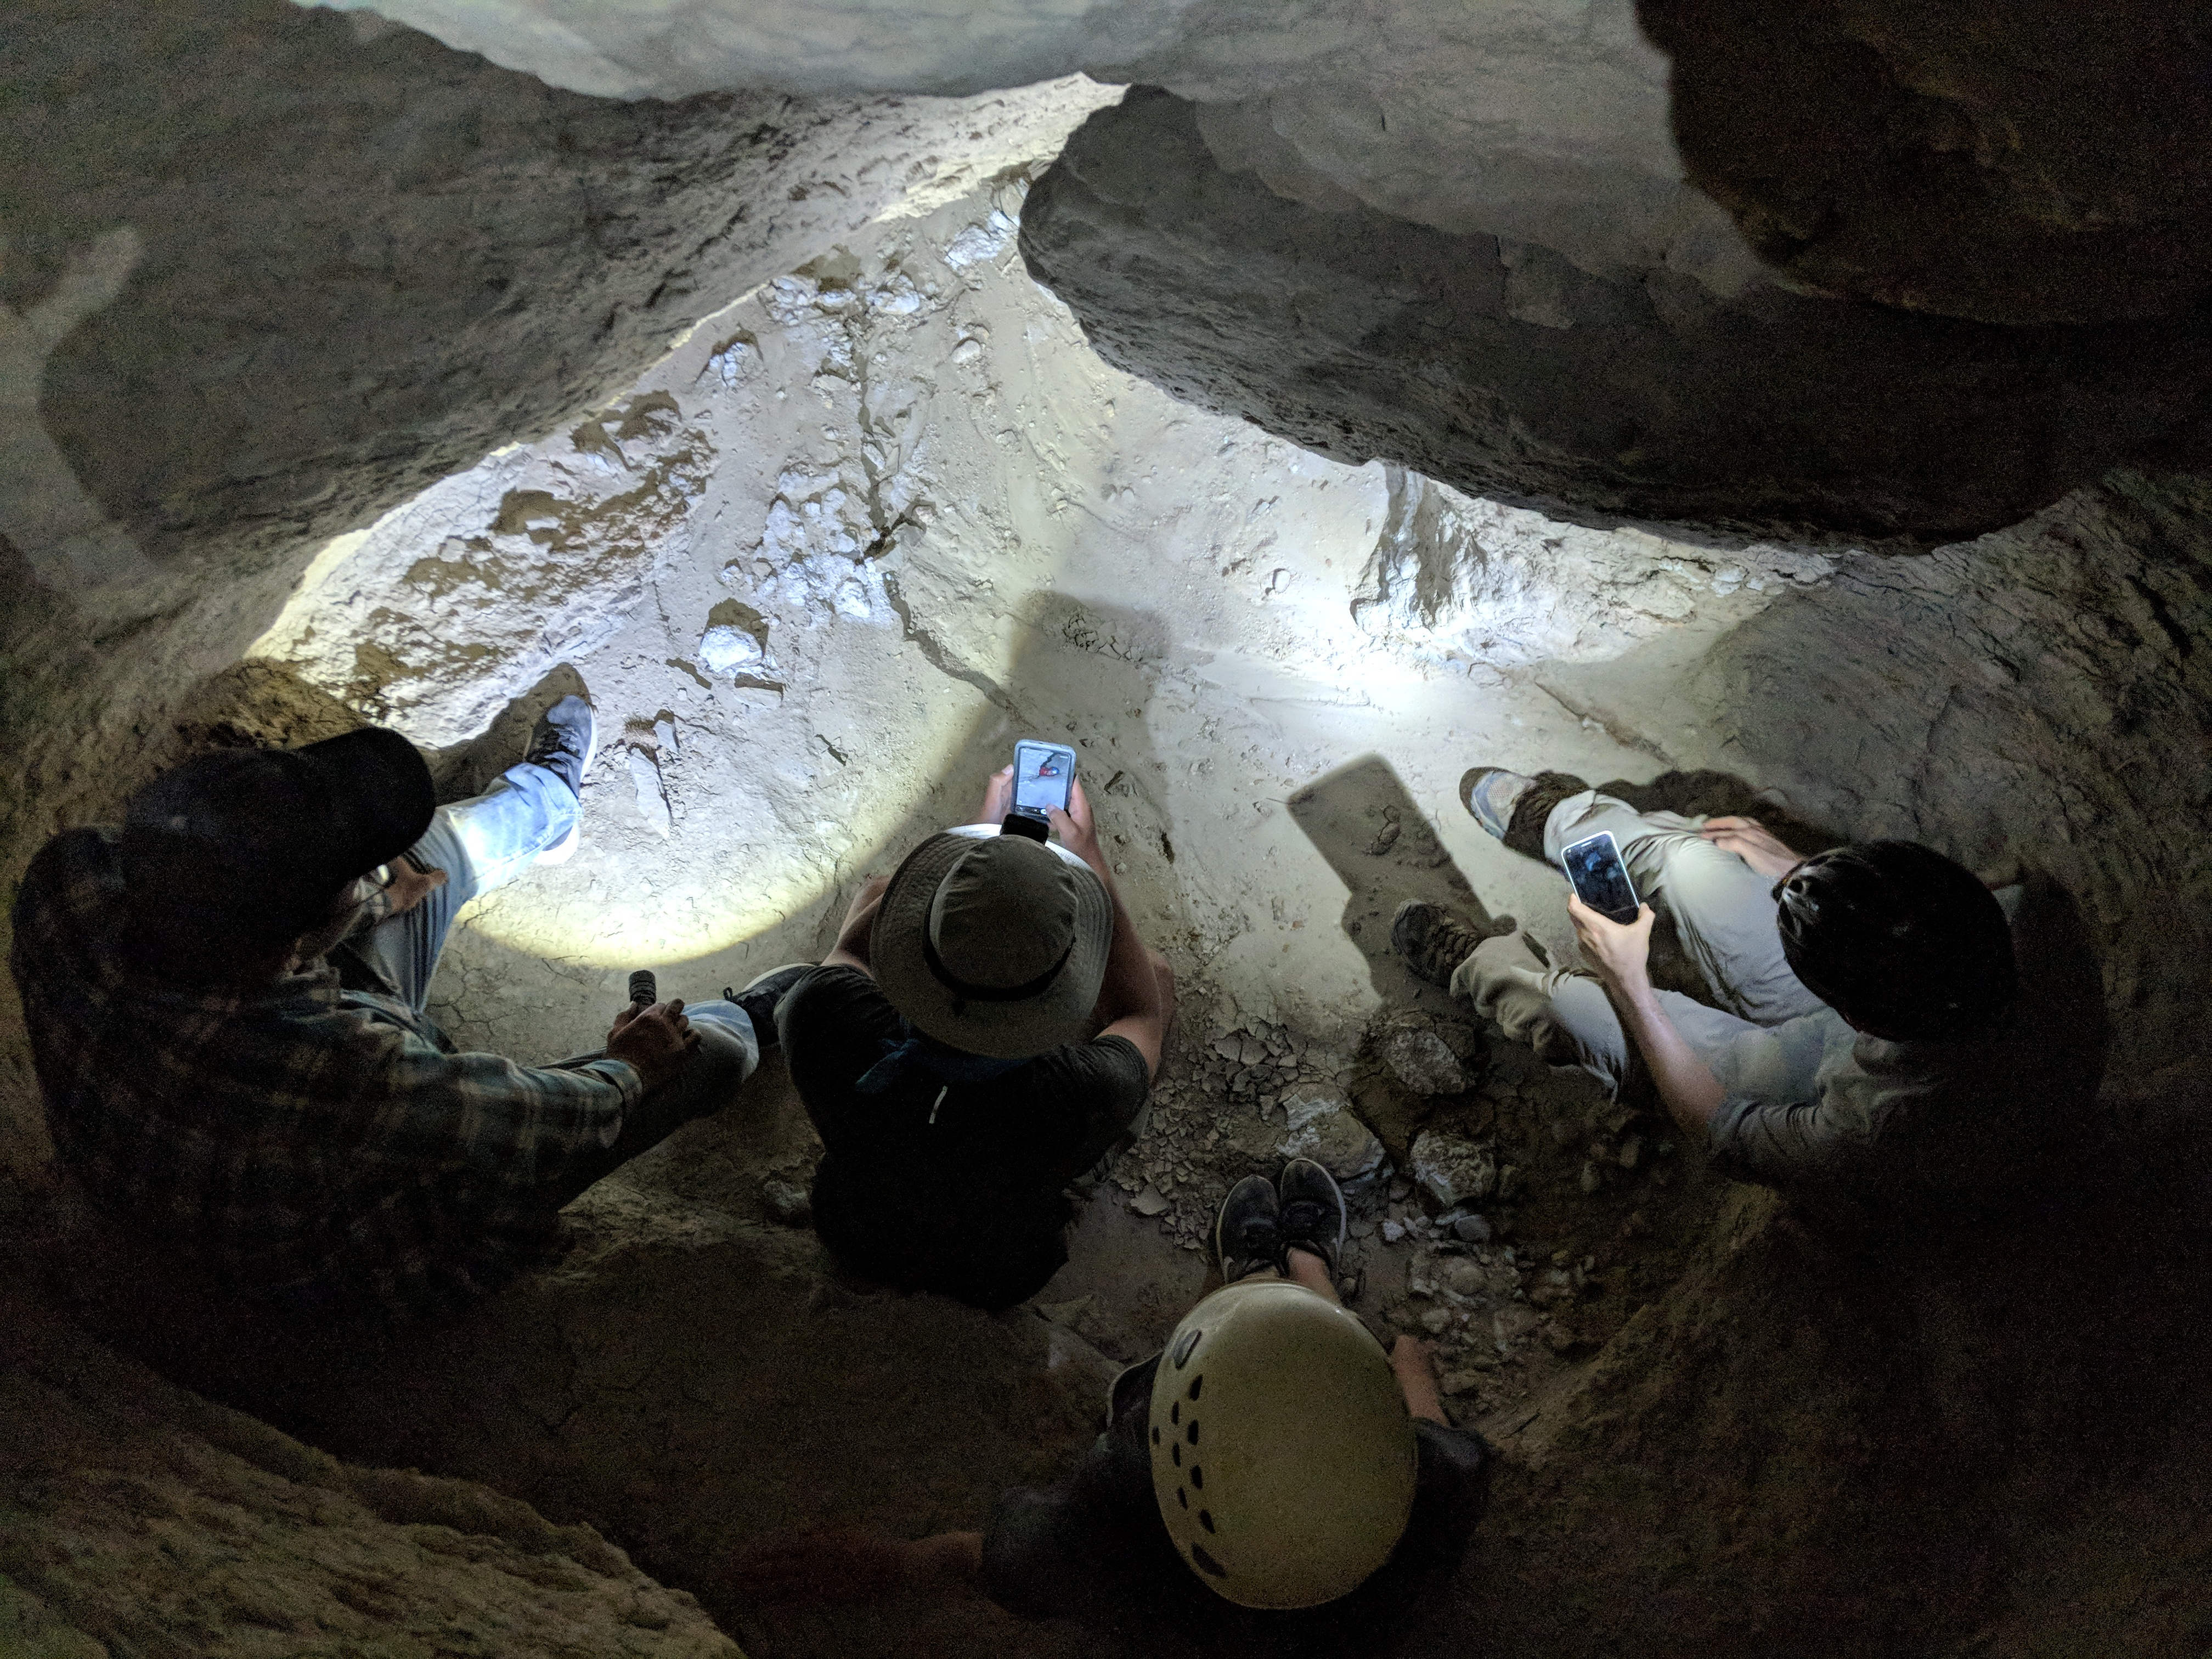 Meeting in a cave